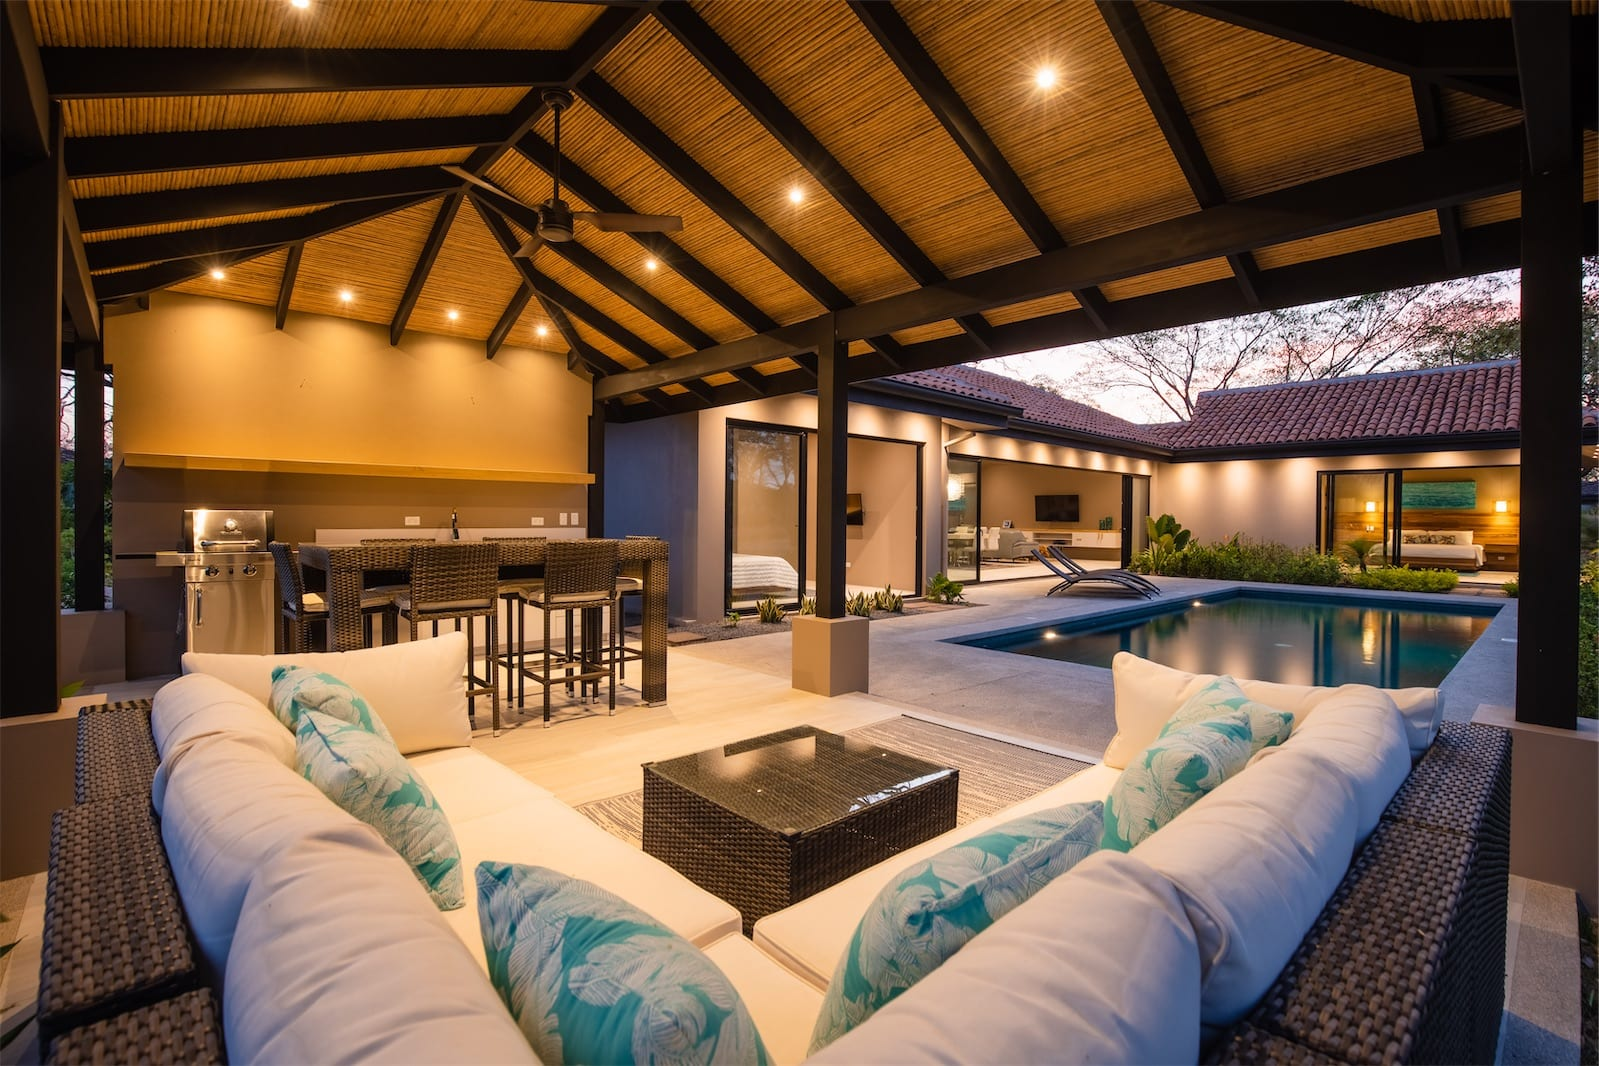 LUXURIOUS 5BED RESIDENCE IN GATED COMMUNITY $785,000